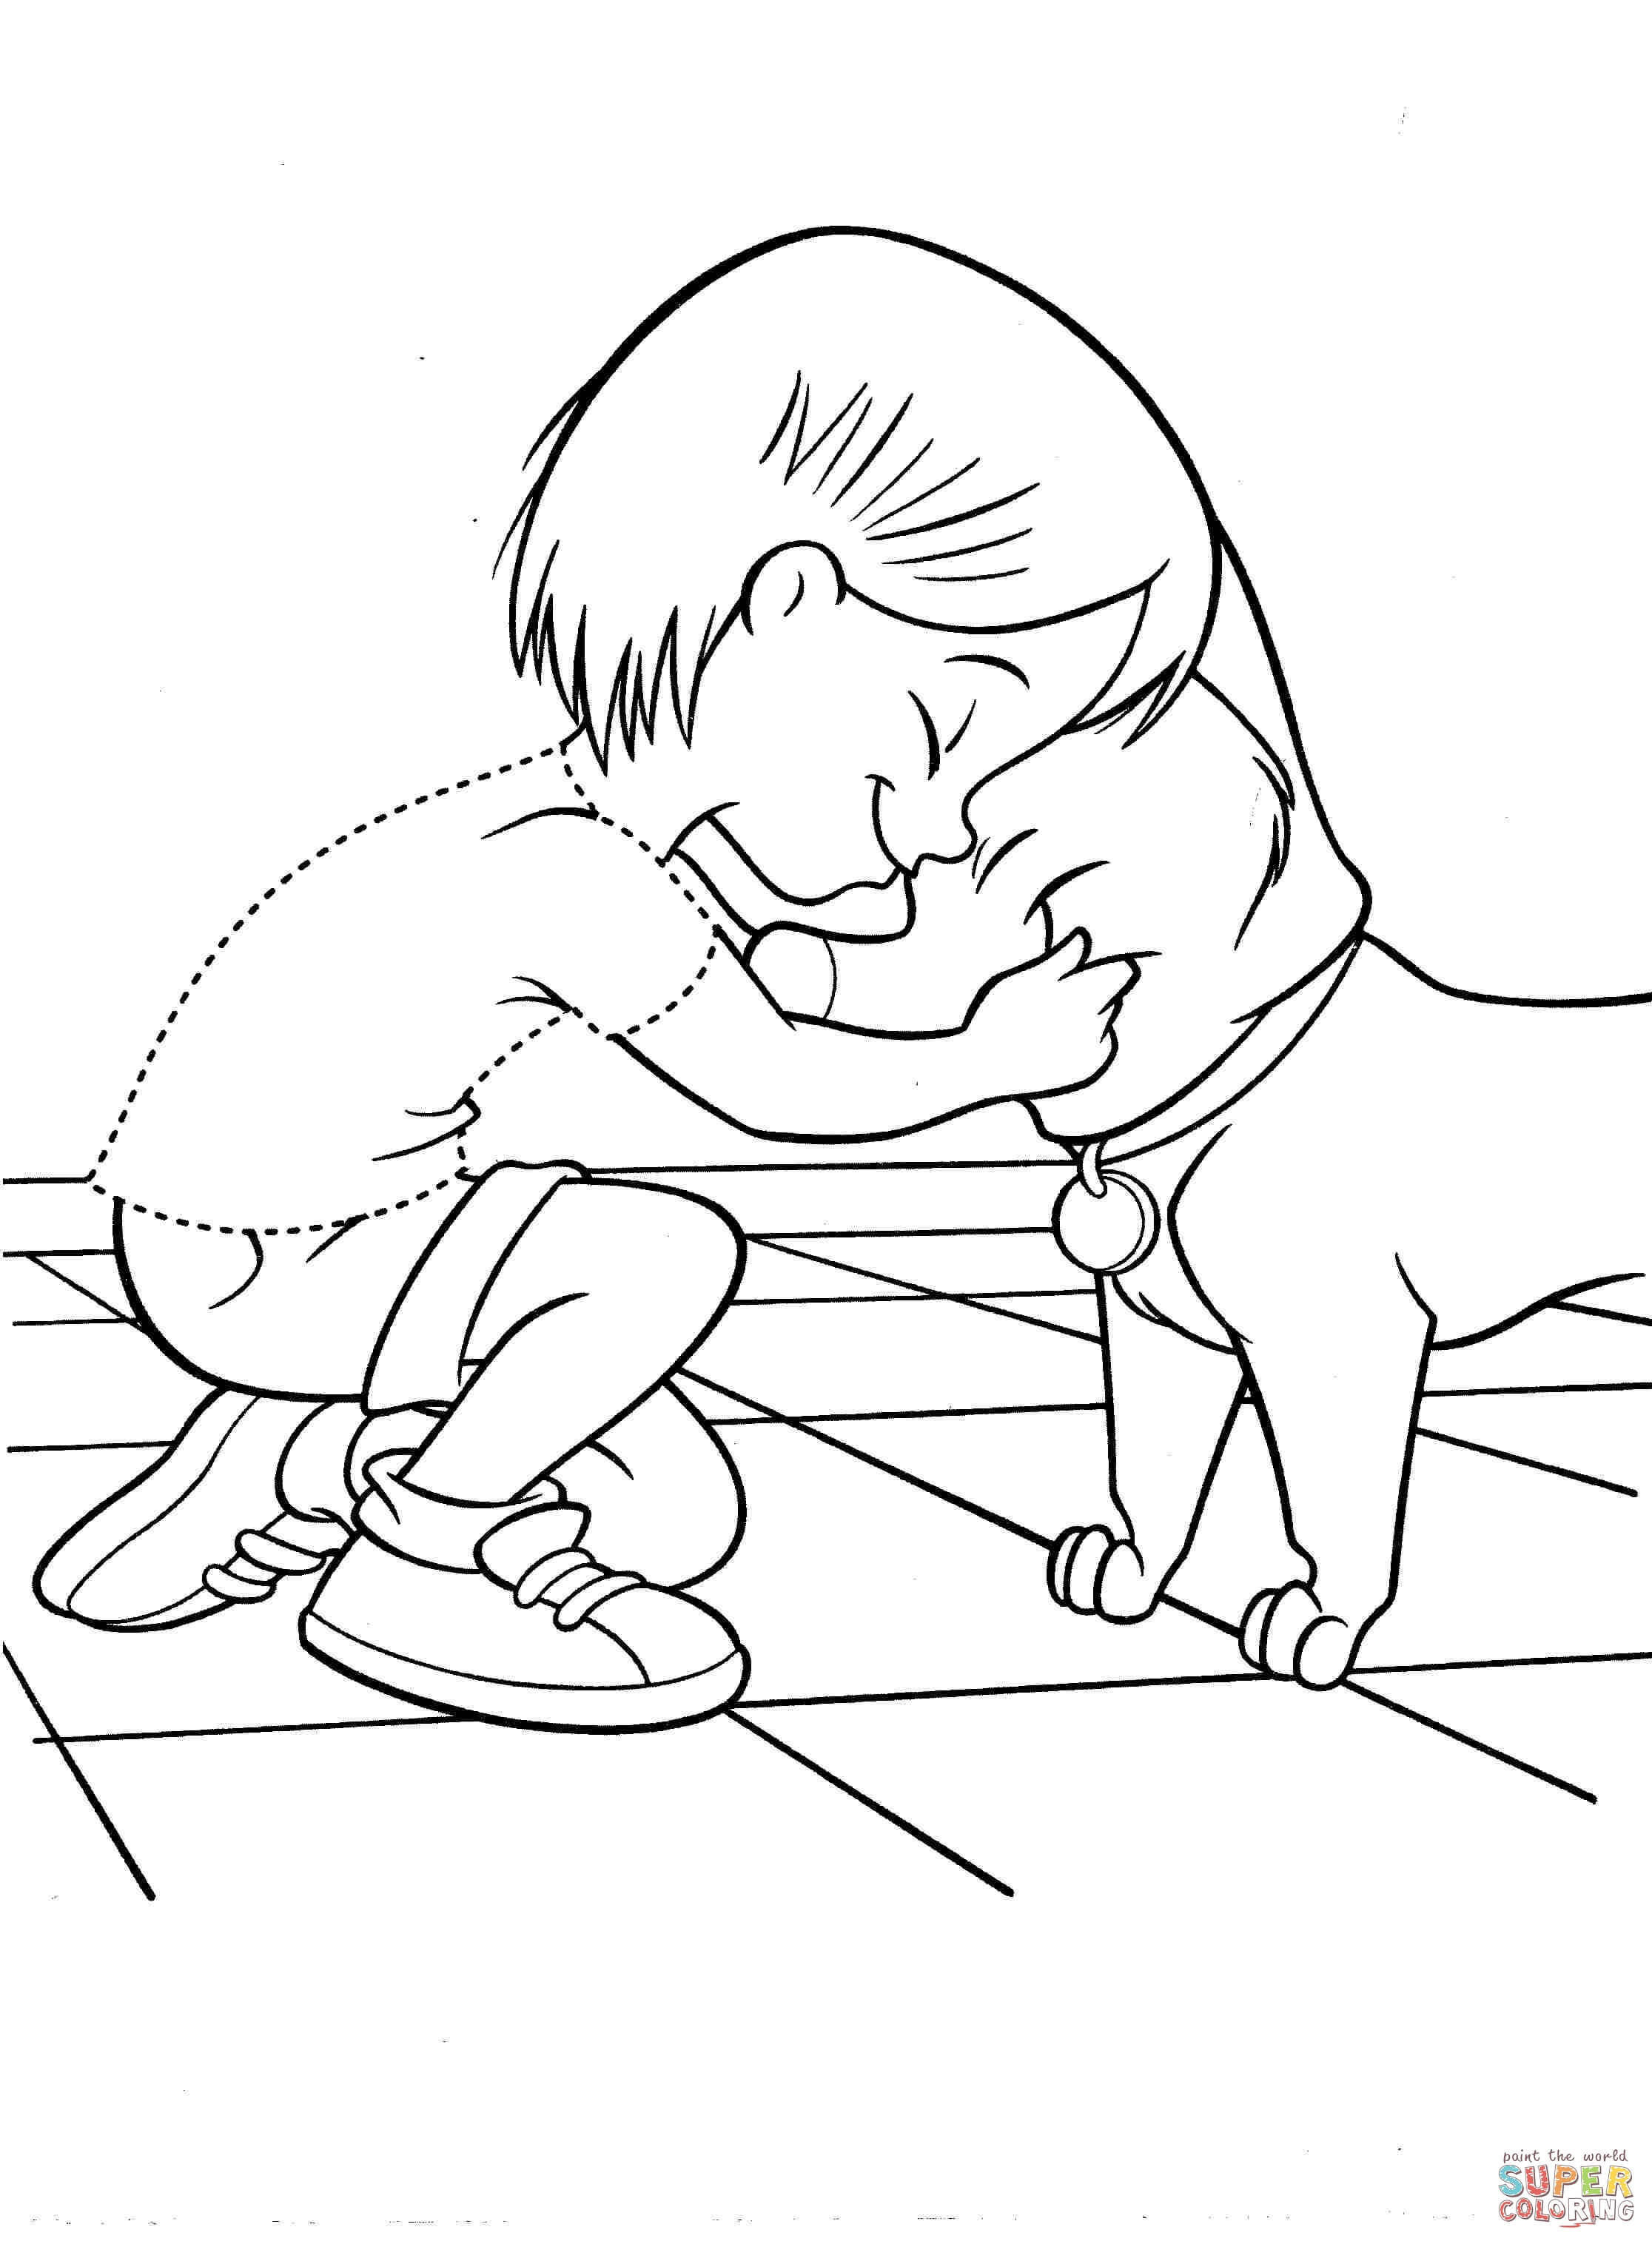 2232x3032 Penny With Dog Coloring Page Free Printable Coloring Pages